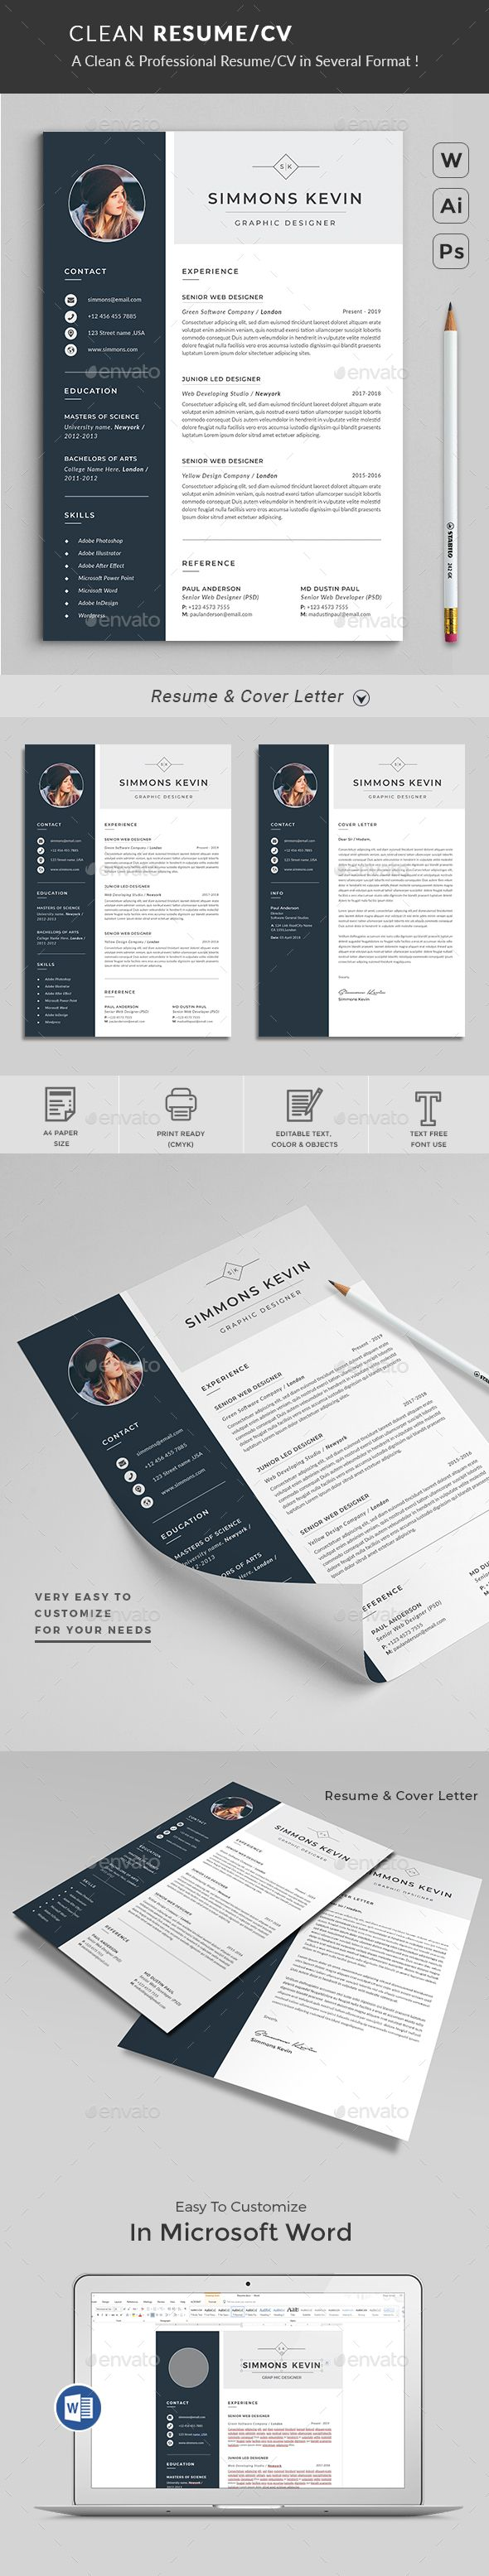 Resume Resumes Stationery The flexible page